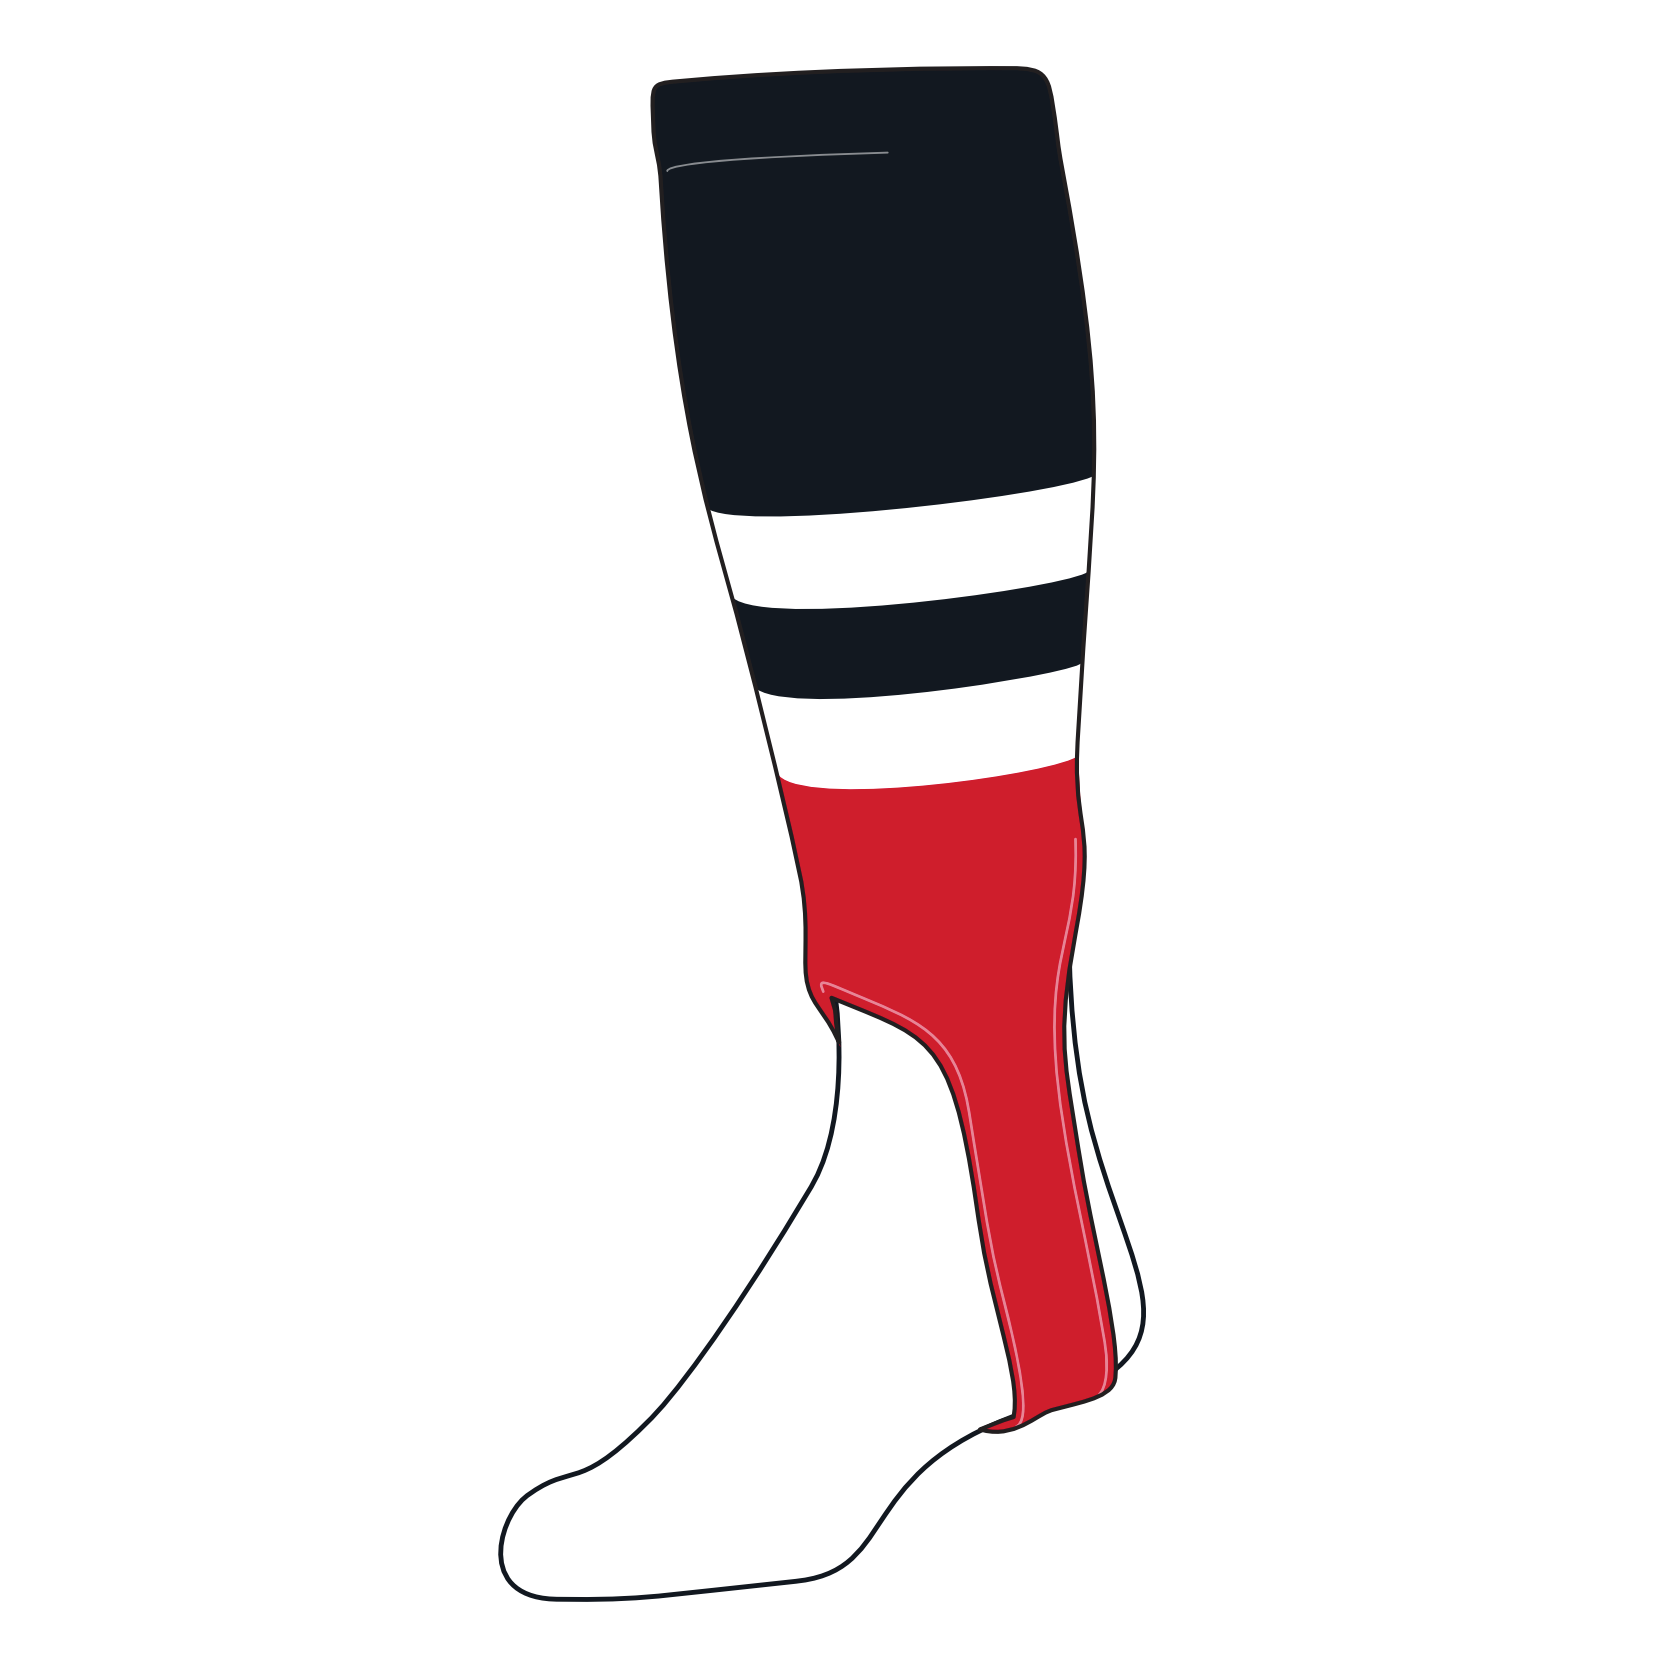 TCK Baseball Stirrups Medium (200G, 5in) Black, White, Red